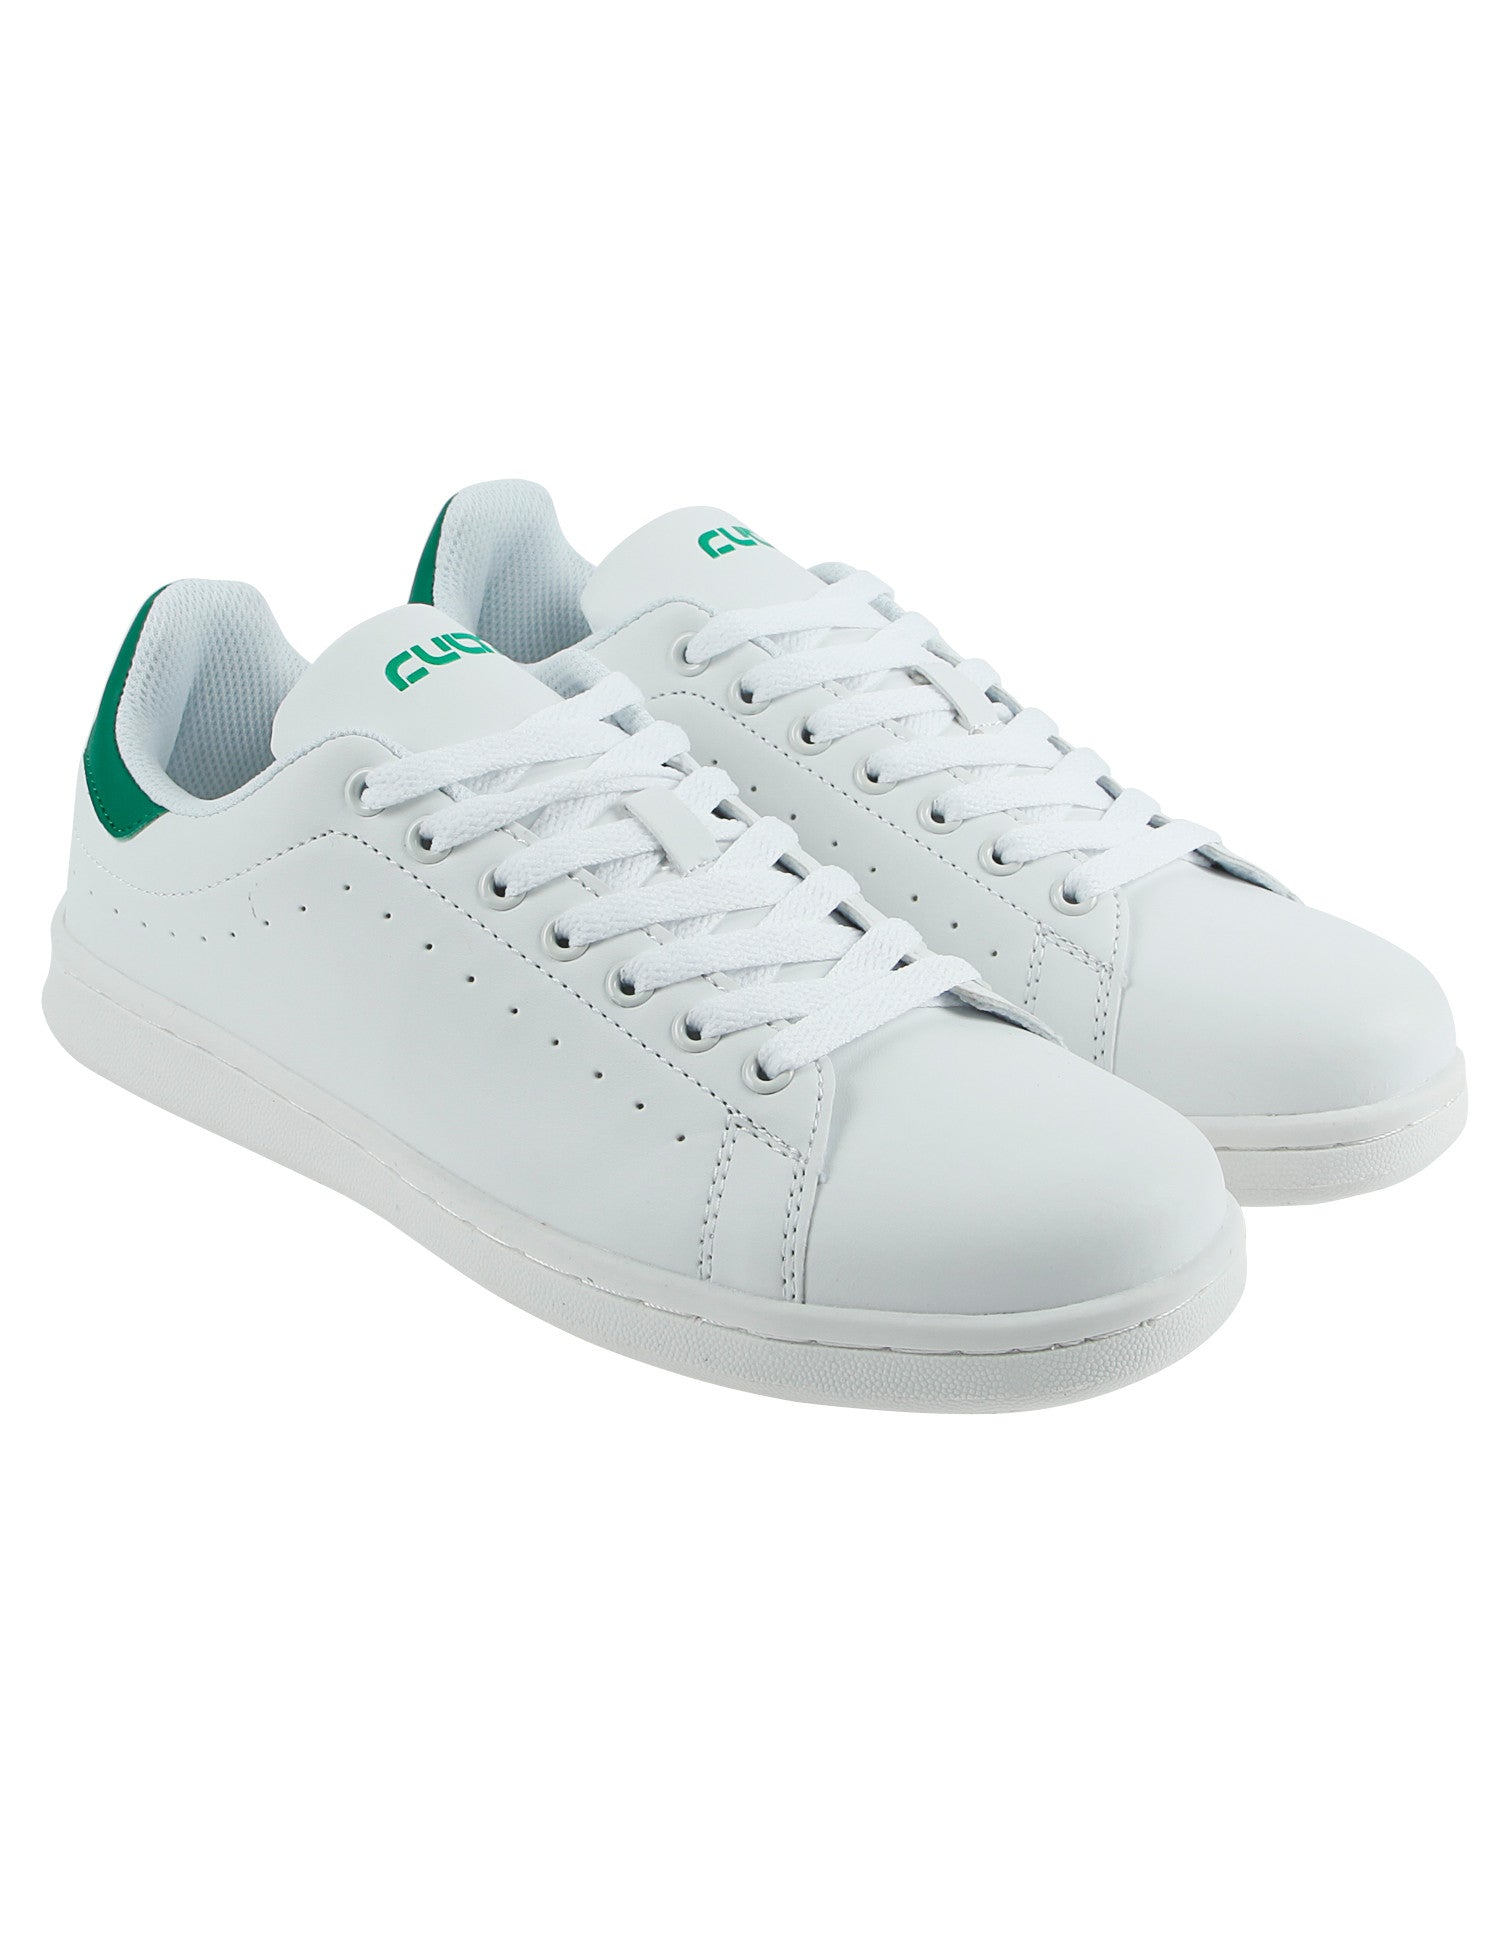 Cultz 851127M Shoes White Green